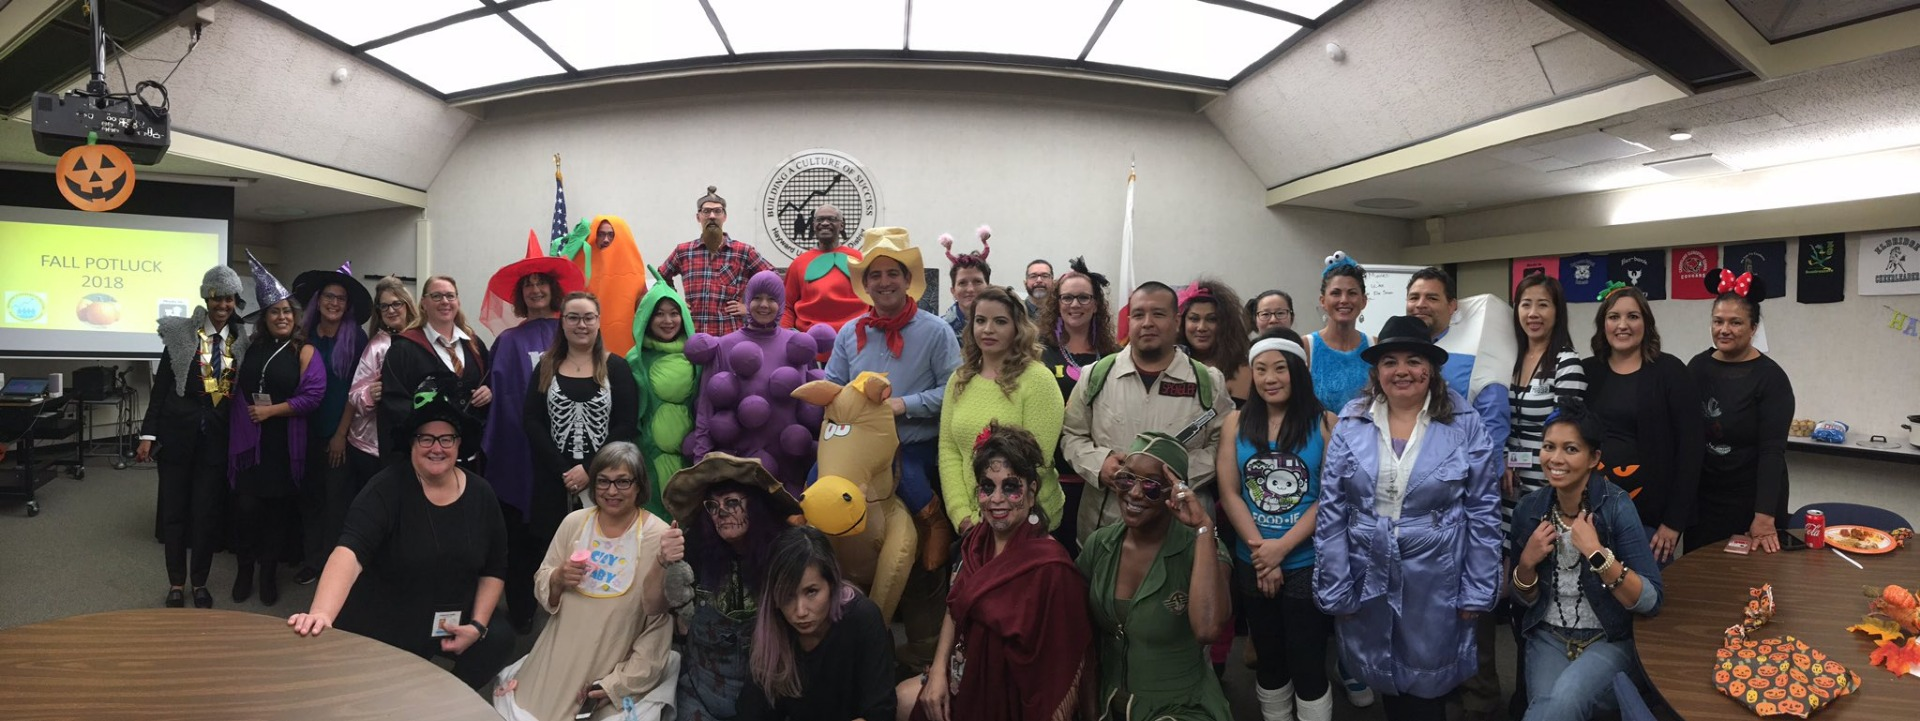 Halloween staff picture